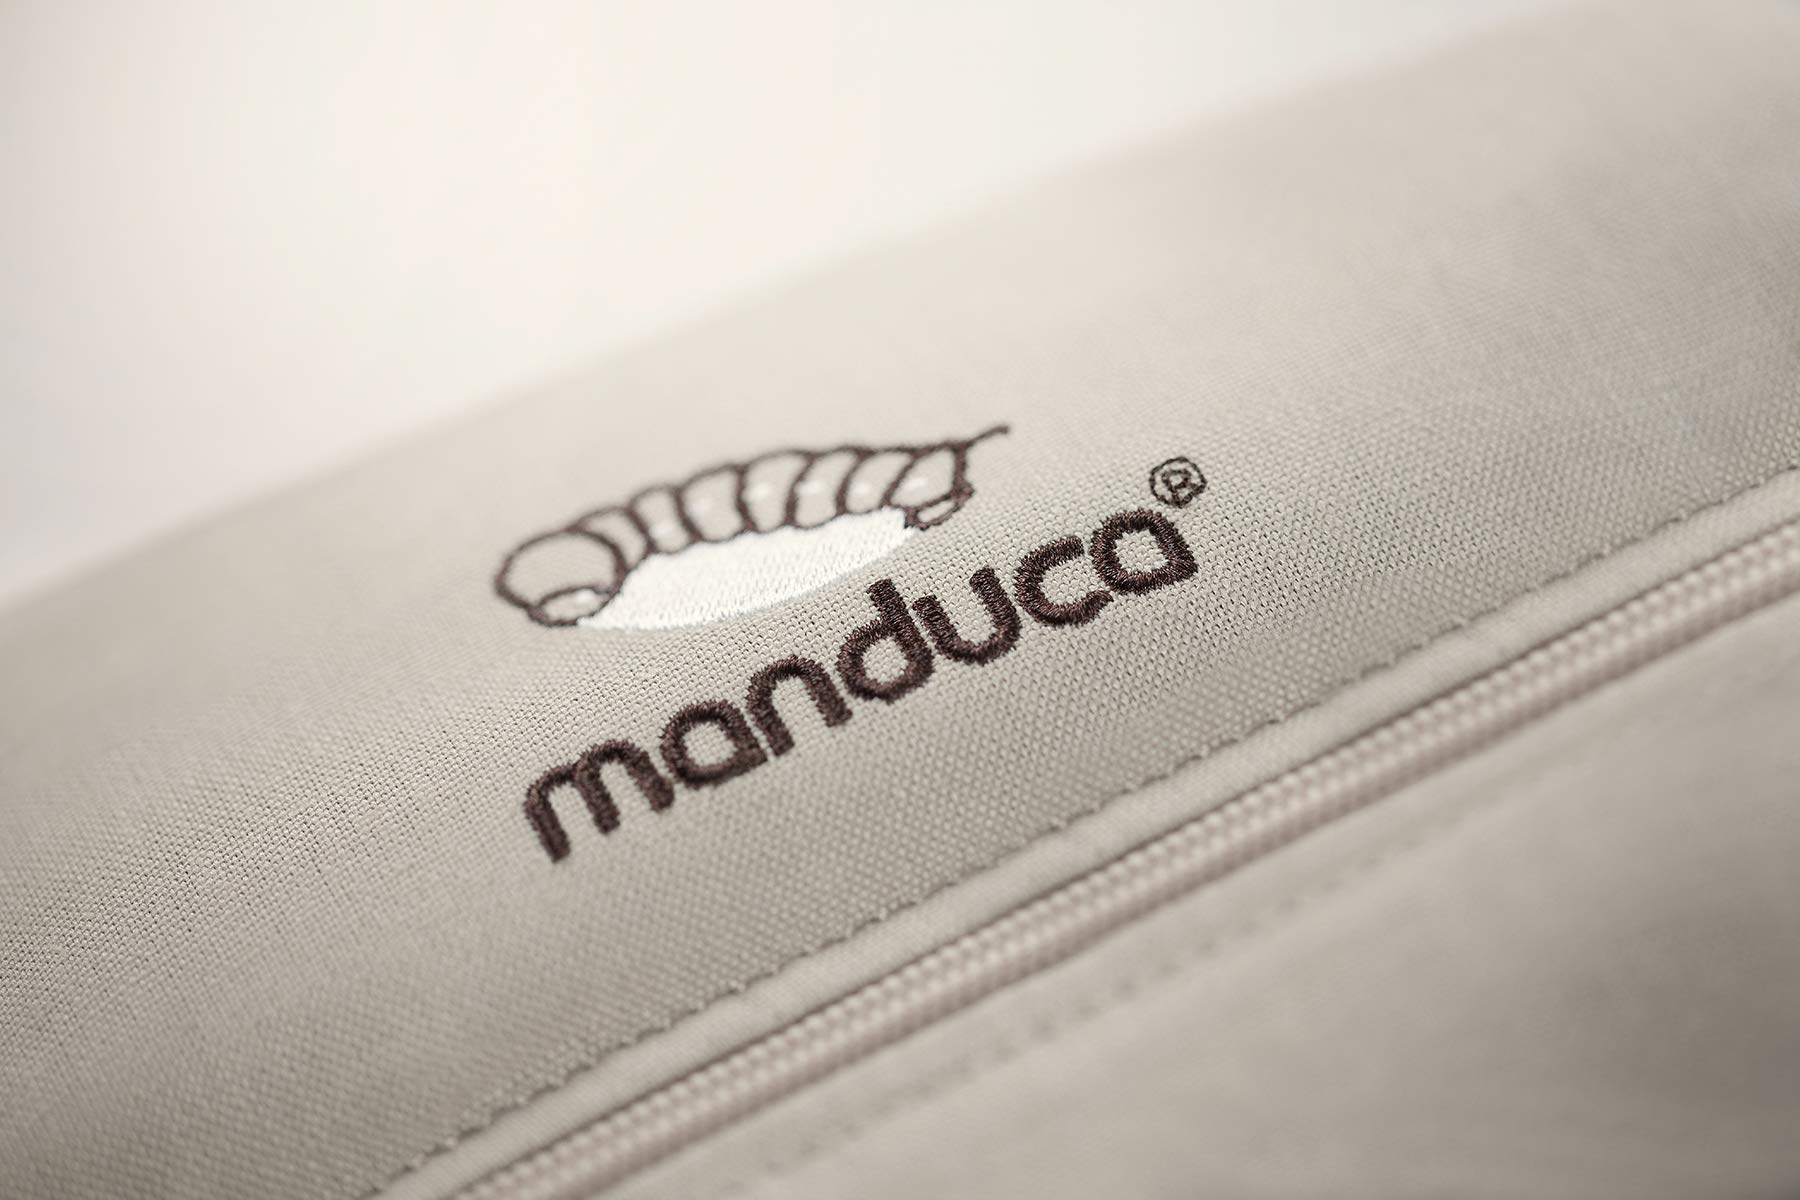 manduca First Baby Carrier > HempCotton Sand < Ergonomic Baby Carrier, Soft & Sturdy Canvas (Organic Cotton & Hemp), Front Carry, Hip Seat and Back Carry, from Newborn to Toddlers up to 20kg, Beige Manduca New features: Improved three-point-buckle (secure & easy to open); extra soft canvas made of 45% hemp and 55% organic cotton (outside), 100% organic cotton lining (inside) Already integrated in every baby carrier: infant pouch (newborn insert), stowable headrest & sun protection for your baby, patented back extension (grows with your child); Optional accessories for newborns: Size-It (seat reducer) and Zip-In Ellipse Ergonomic design for men & women: Soft padded shoulder straps (multiple adjustable) & anatomically shaped stable hipbelt (fits hips from 64cm to 140cm) ensure balanced weight distribution. No waist-belt extension needed 4